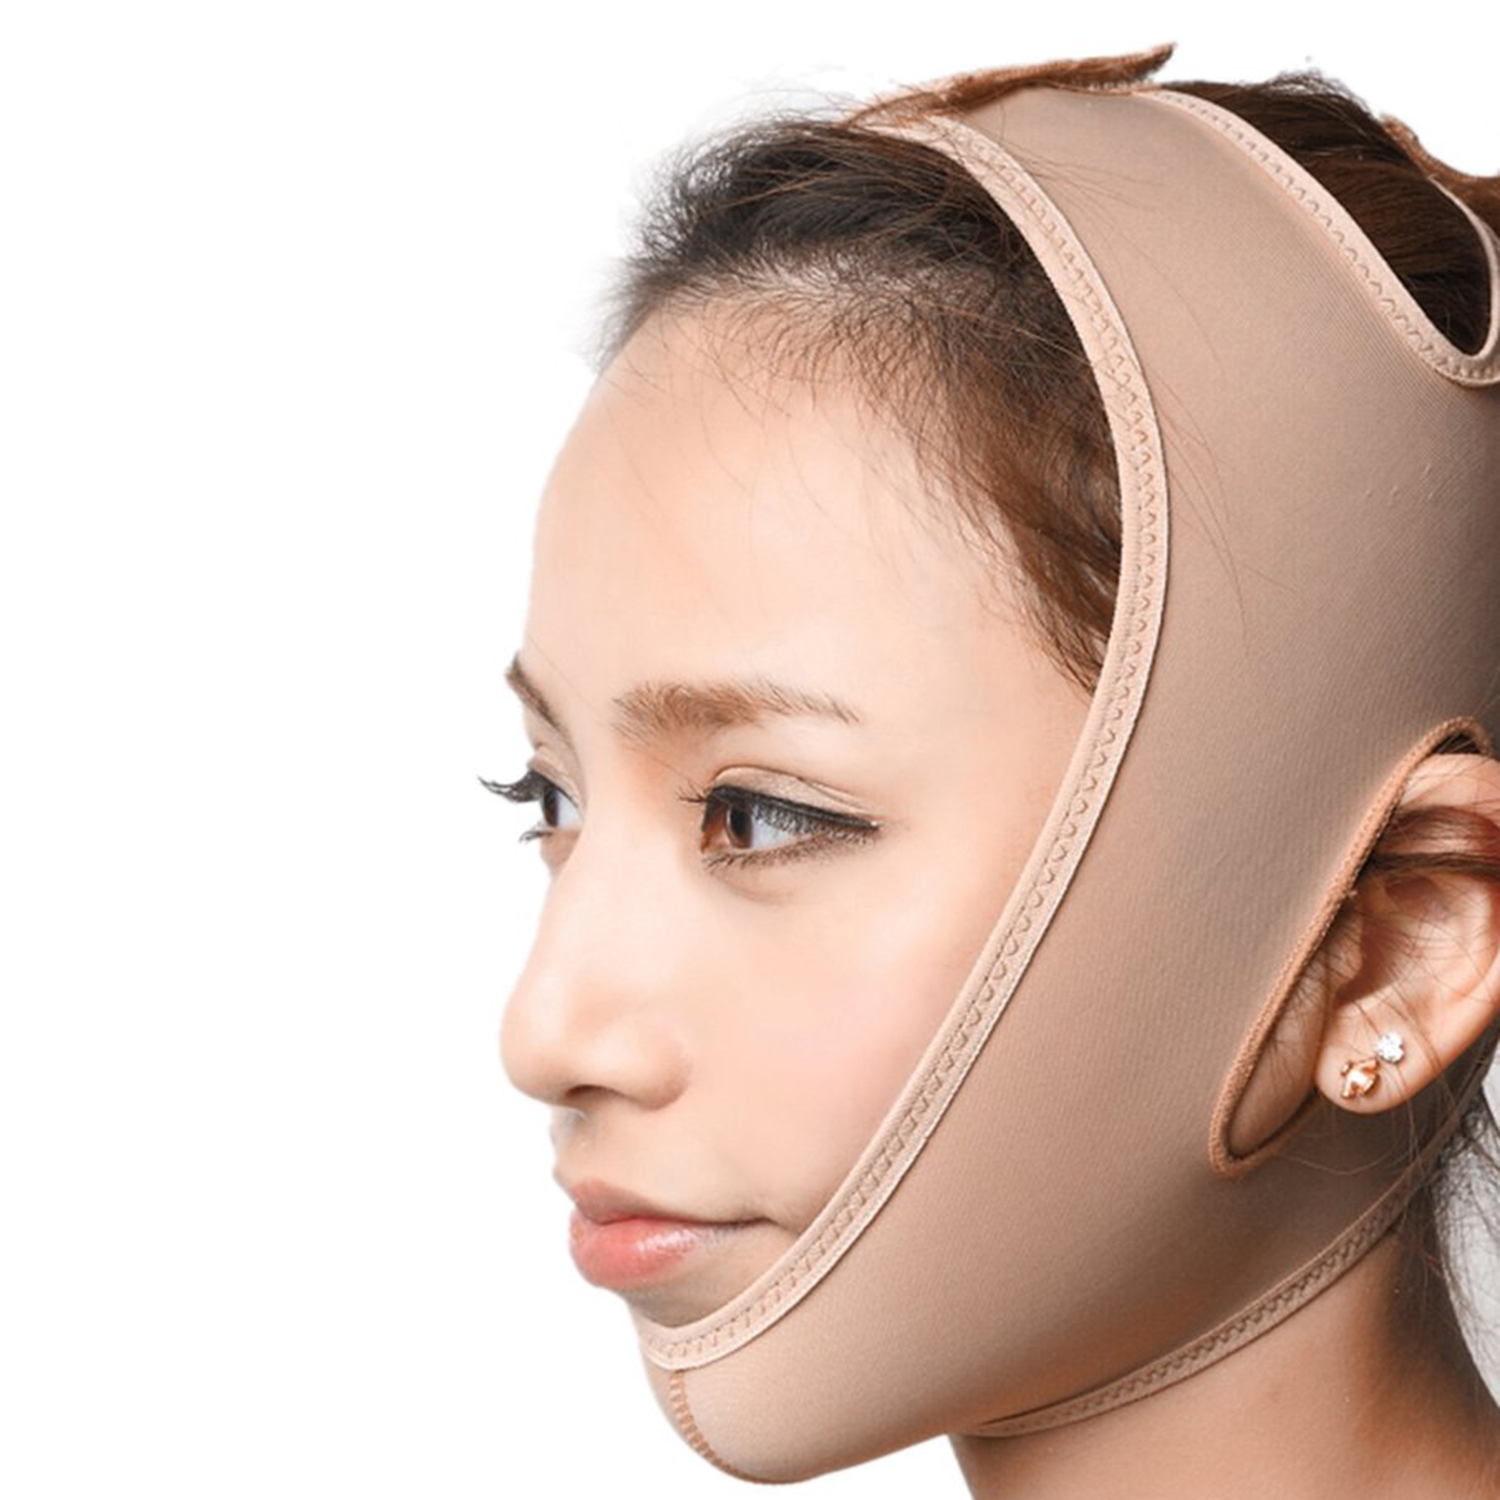 Female Face Slim Mask Delicate Facial Slimming Bandage Comfortable Cheek Lift Up Belt Ultra-Thin Face Care Mask Face Lift Tools